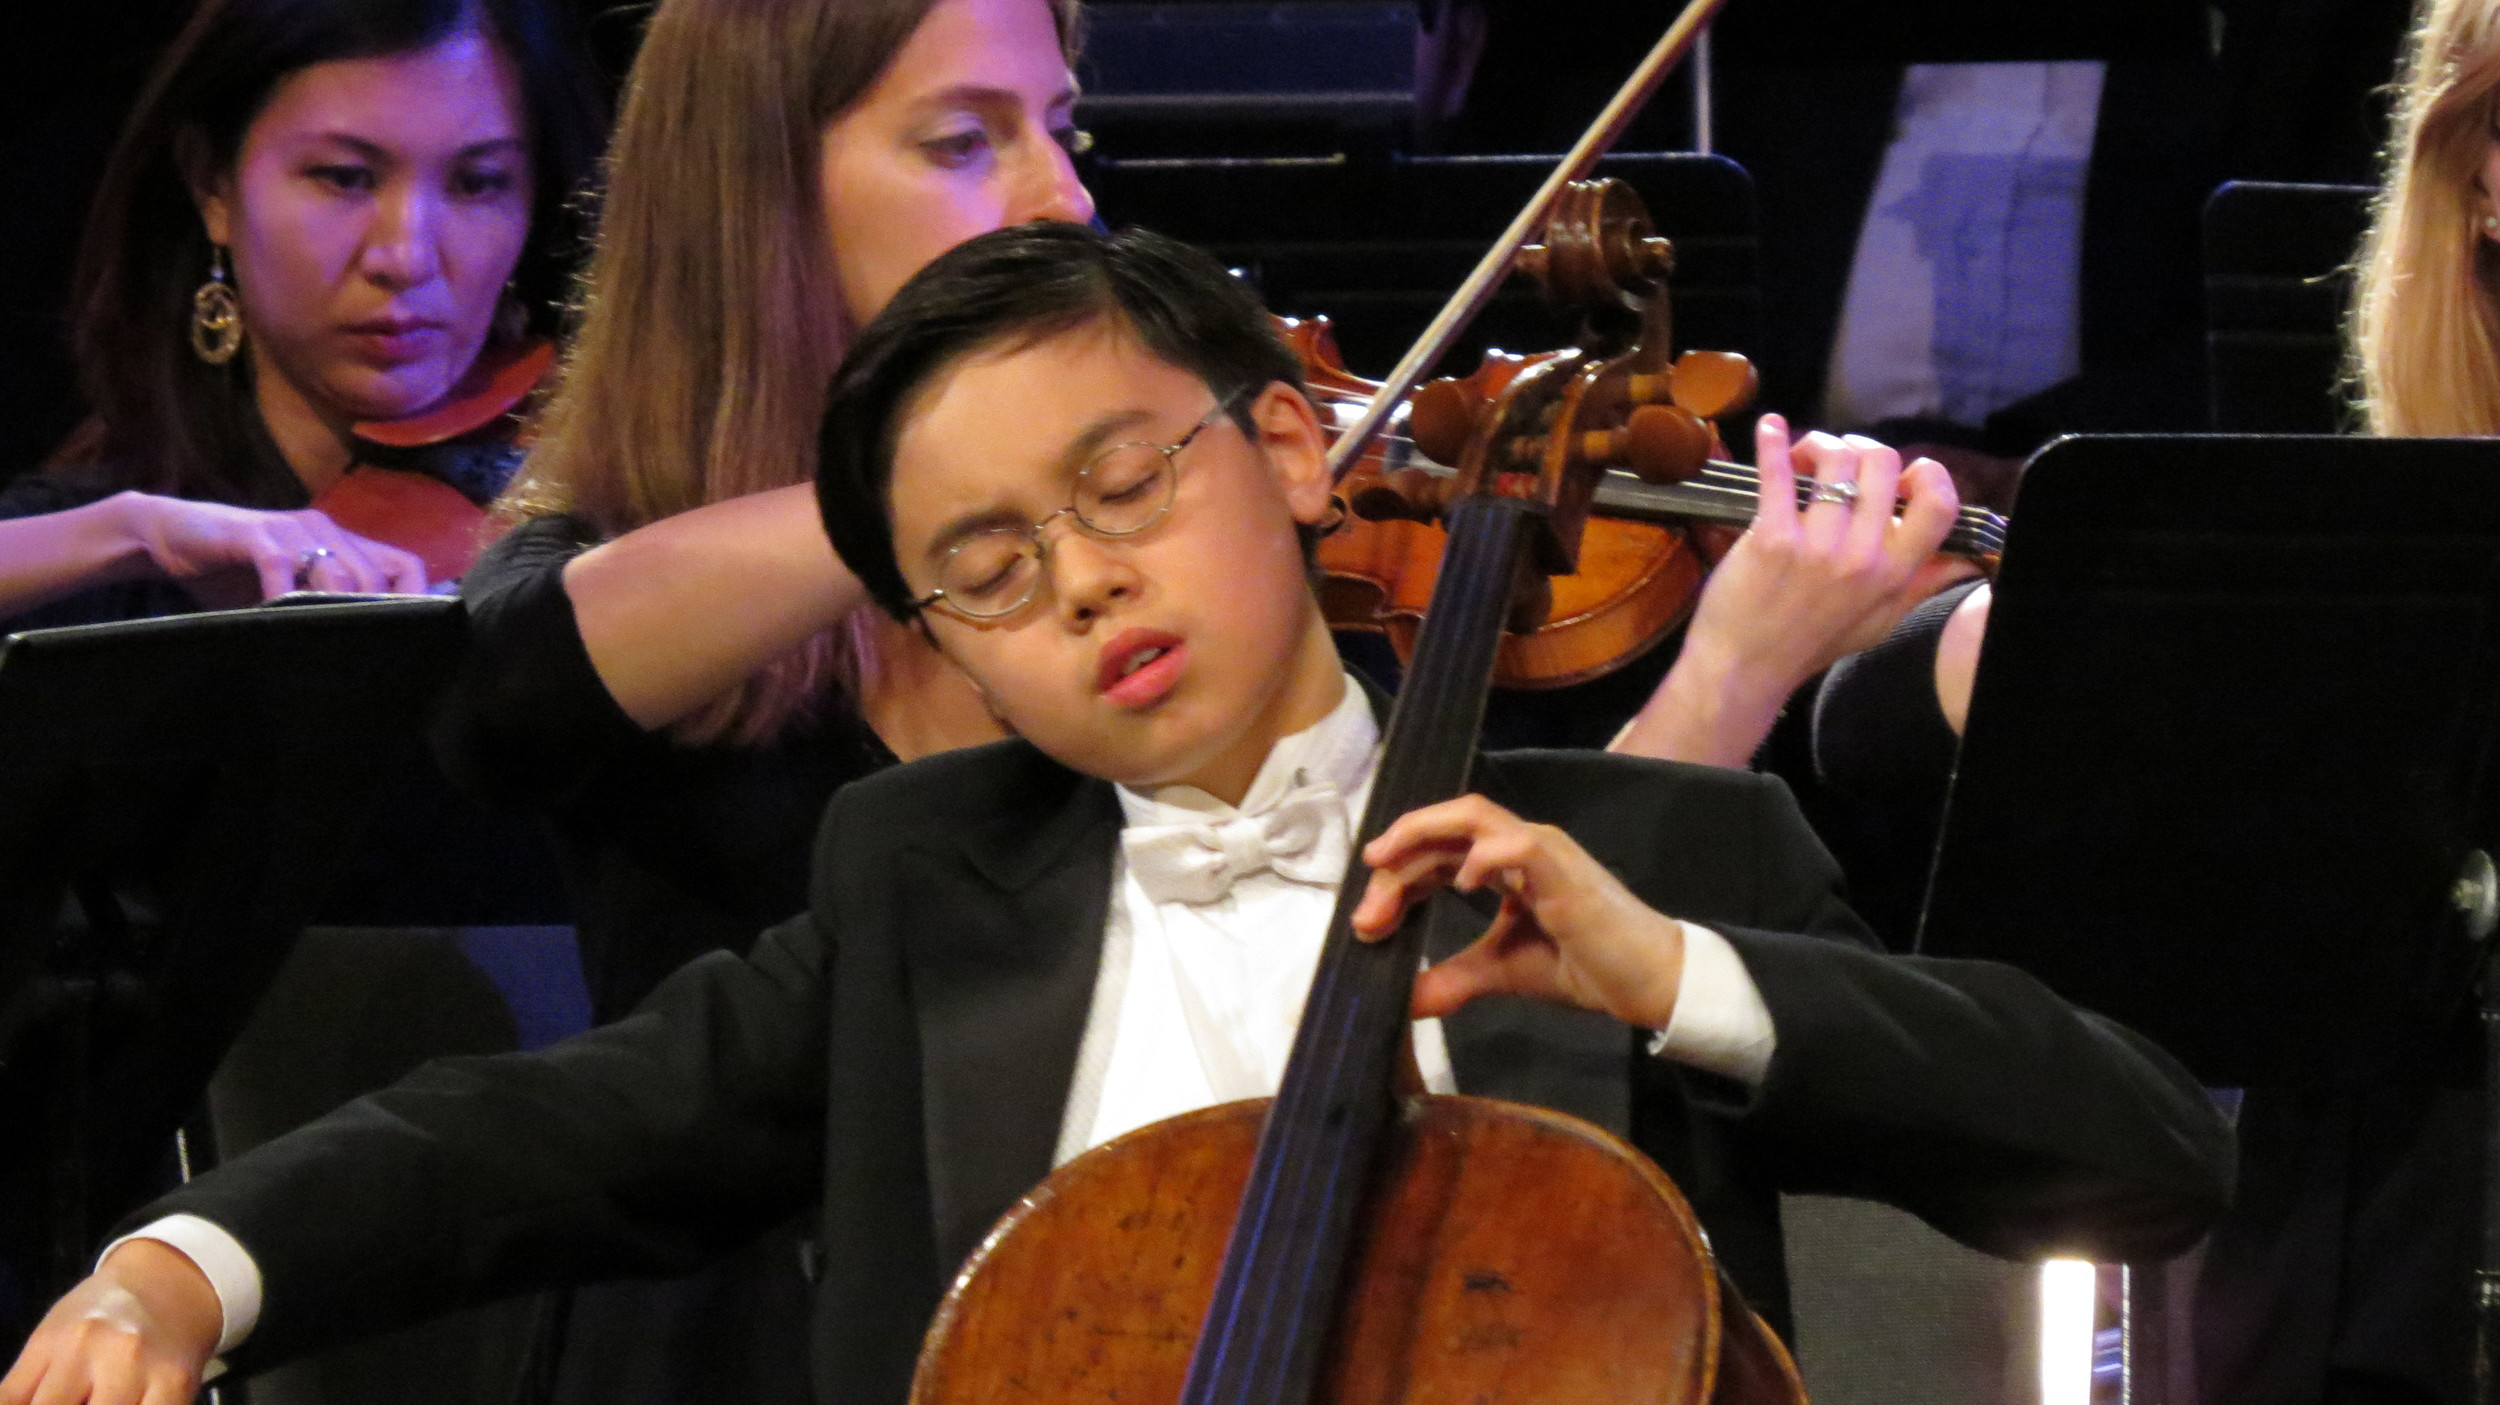 Dylan Shih-Wu performs with amazing maturity